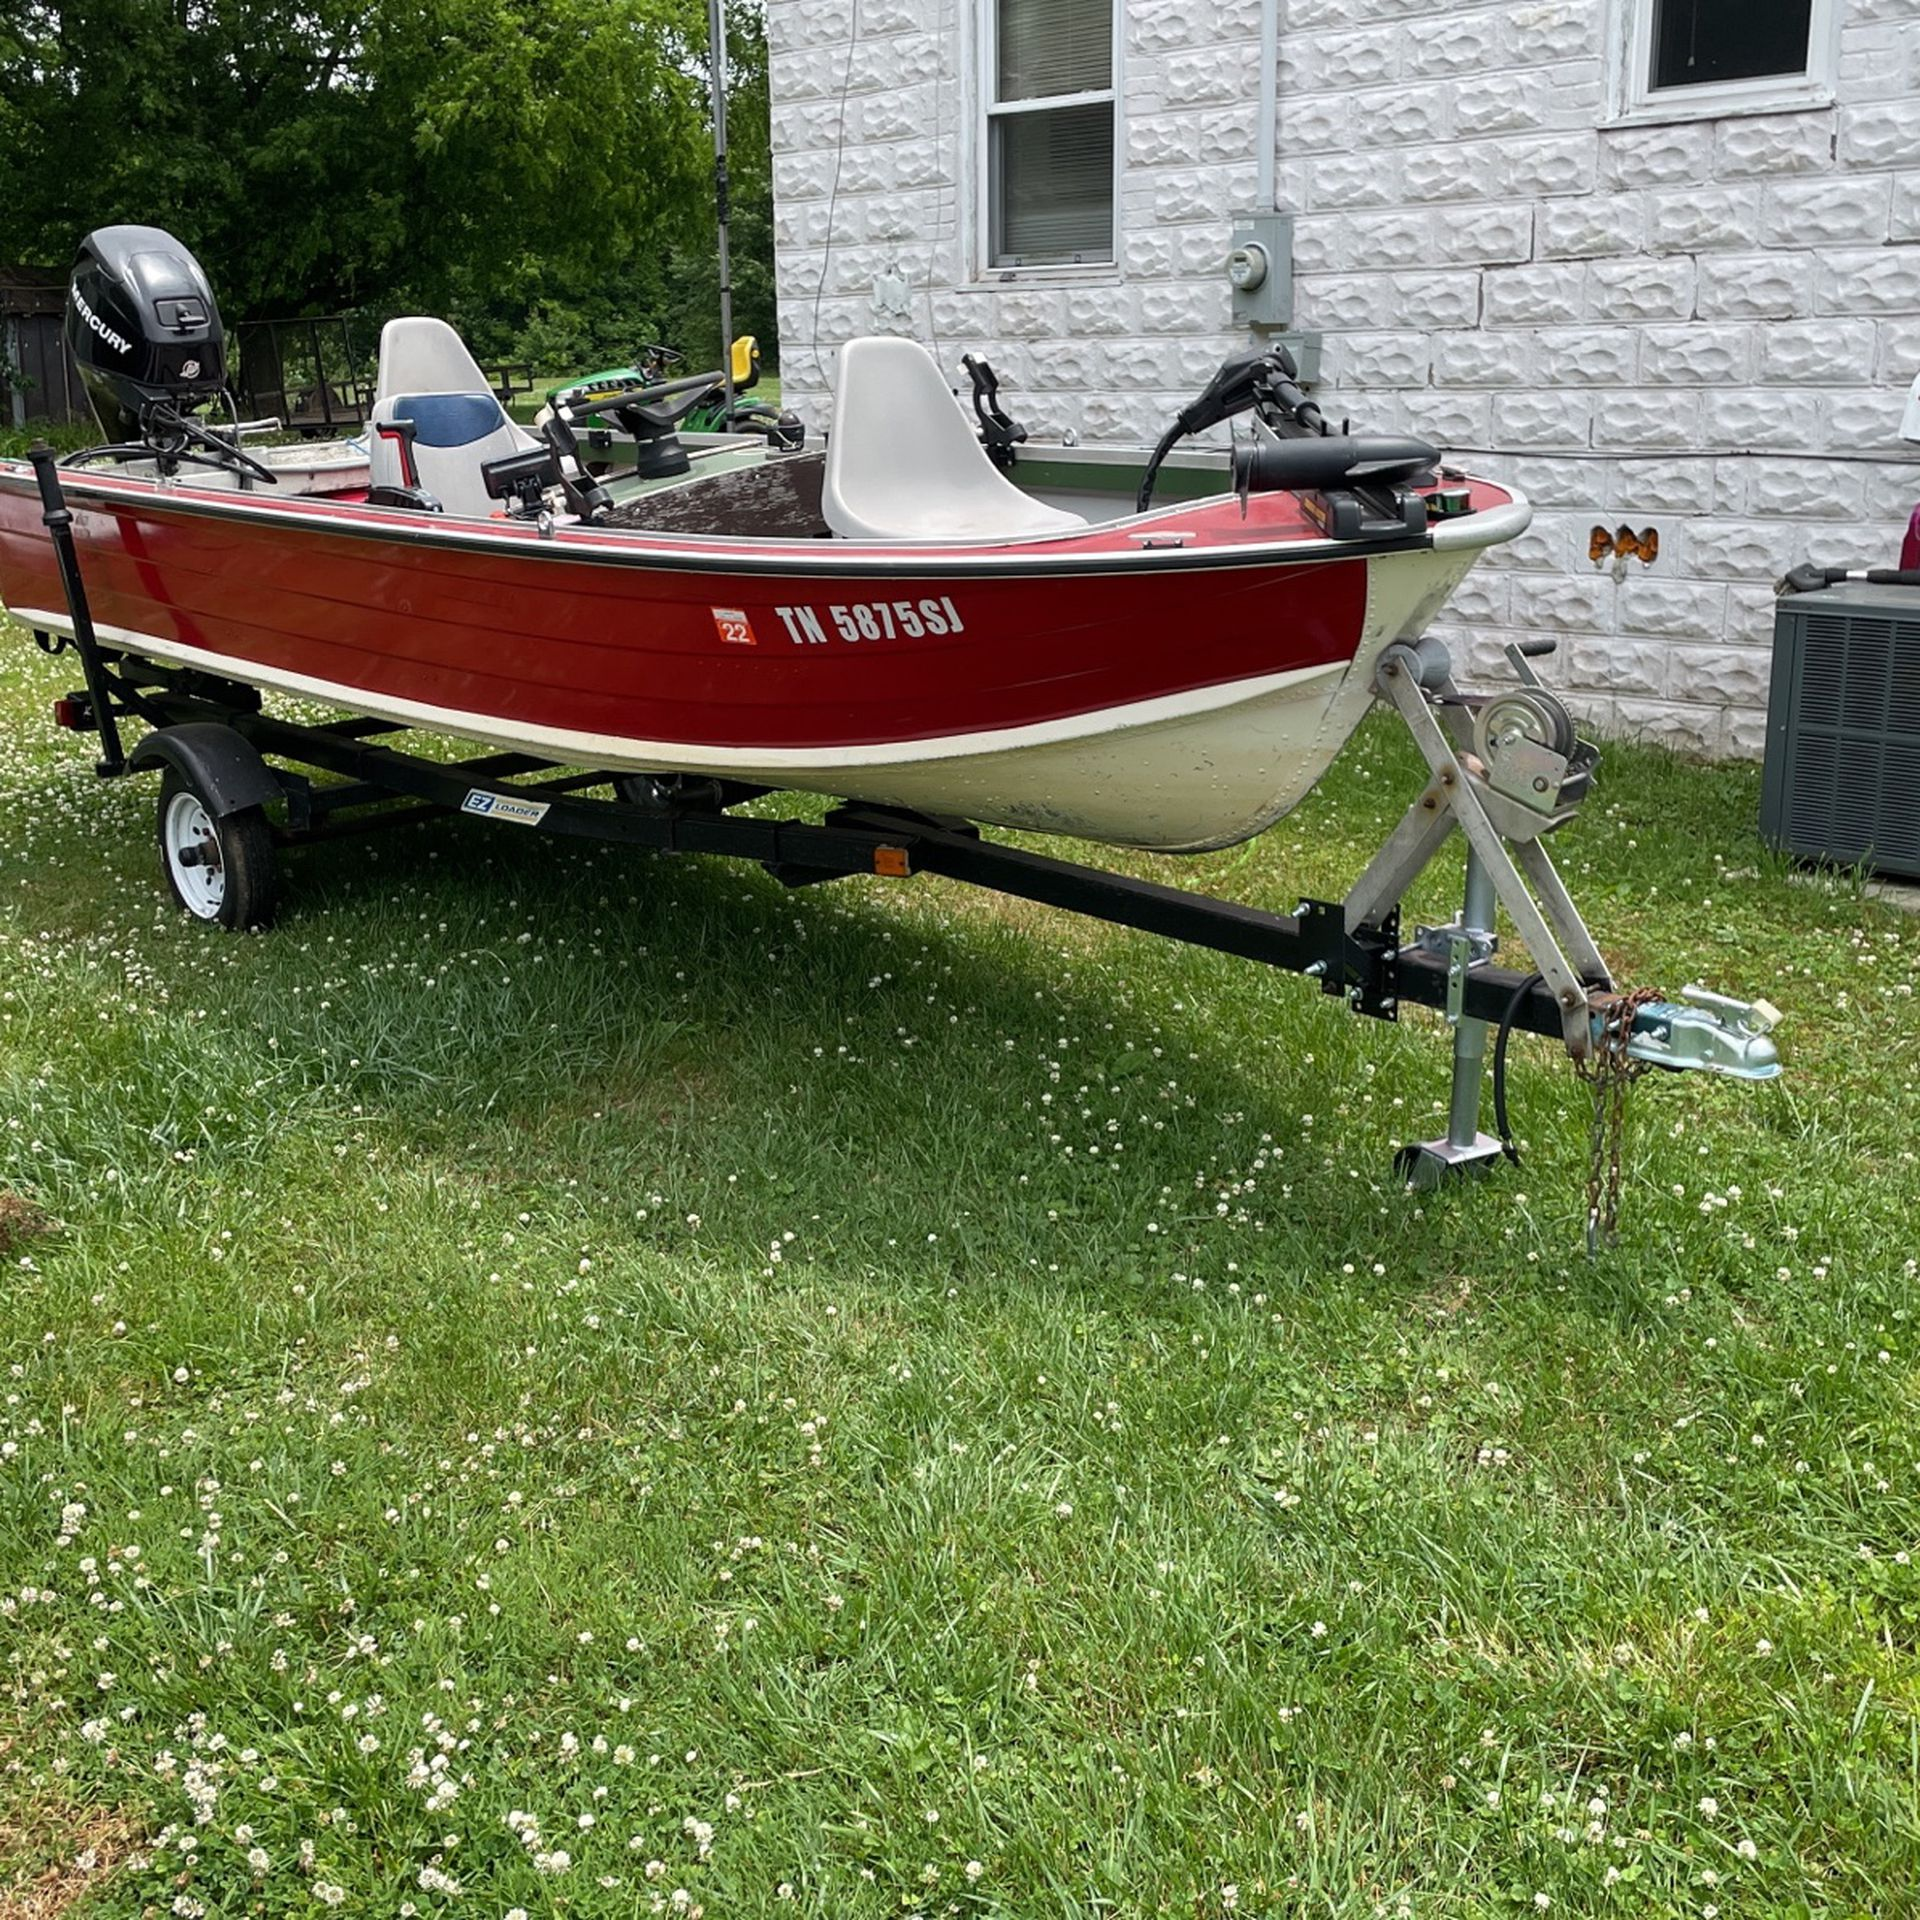 Photo 1977 Starcraft Boat 16ft With 2010 Mercury Four stroke 30hp Motor